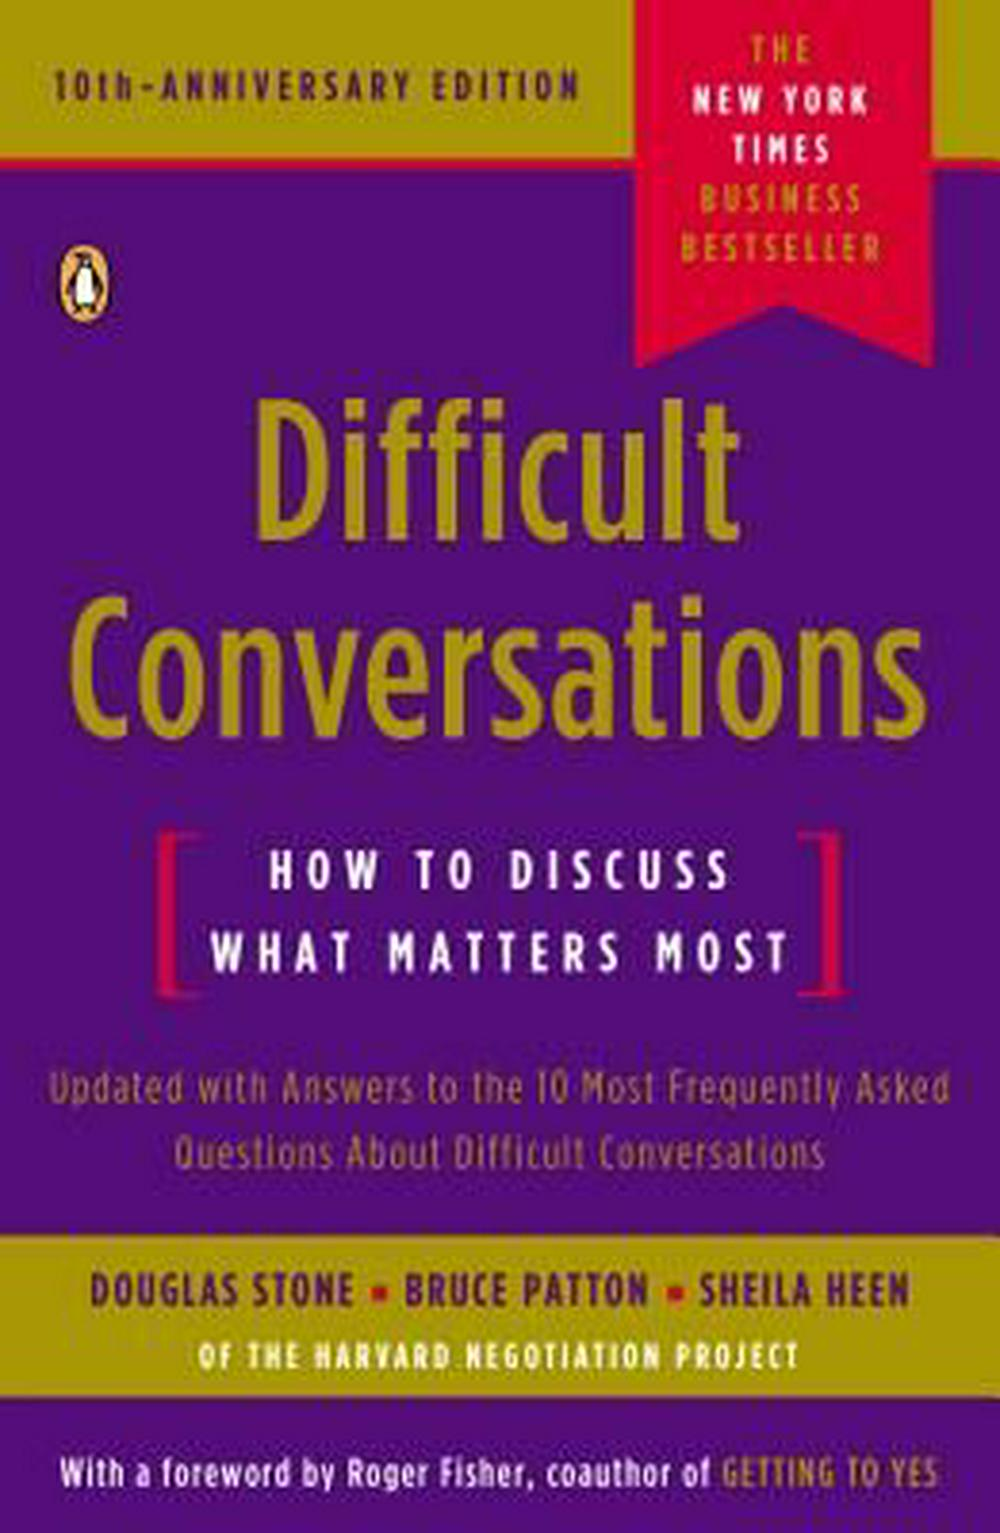 Difficult Conversations by Douglas Stone, ISBN: 9780143118442